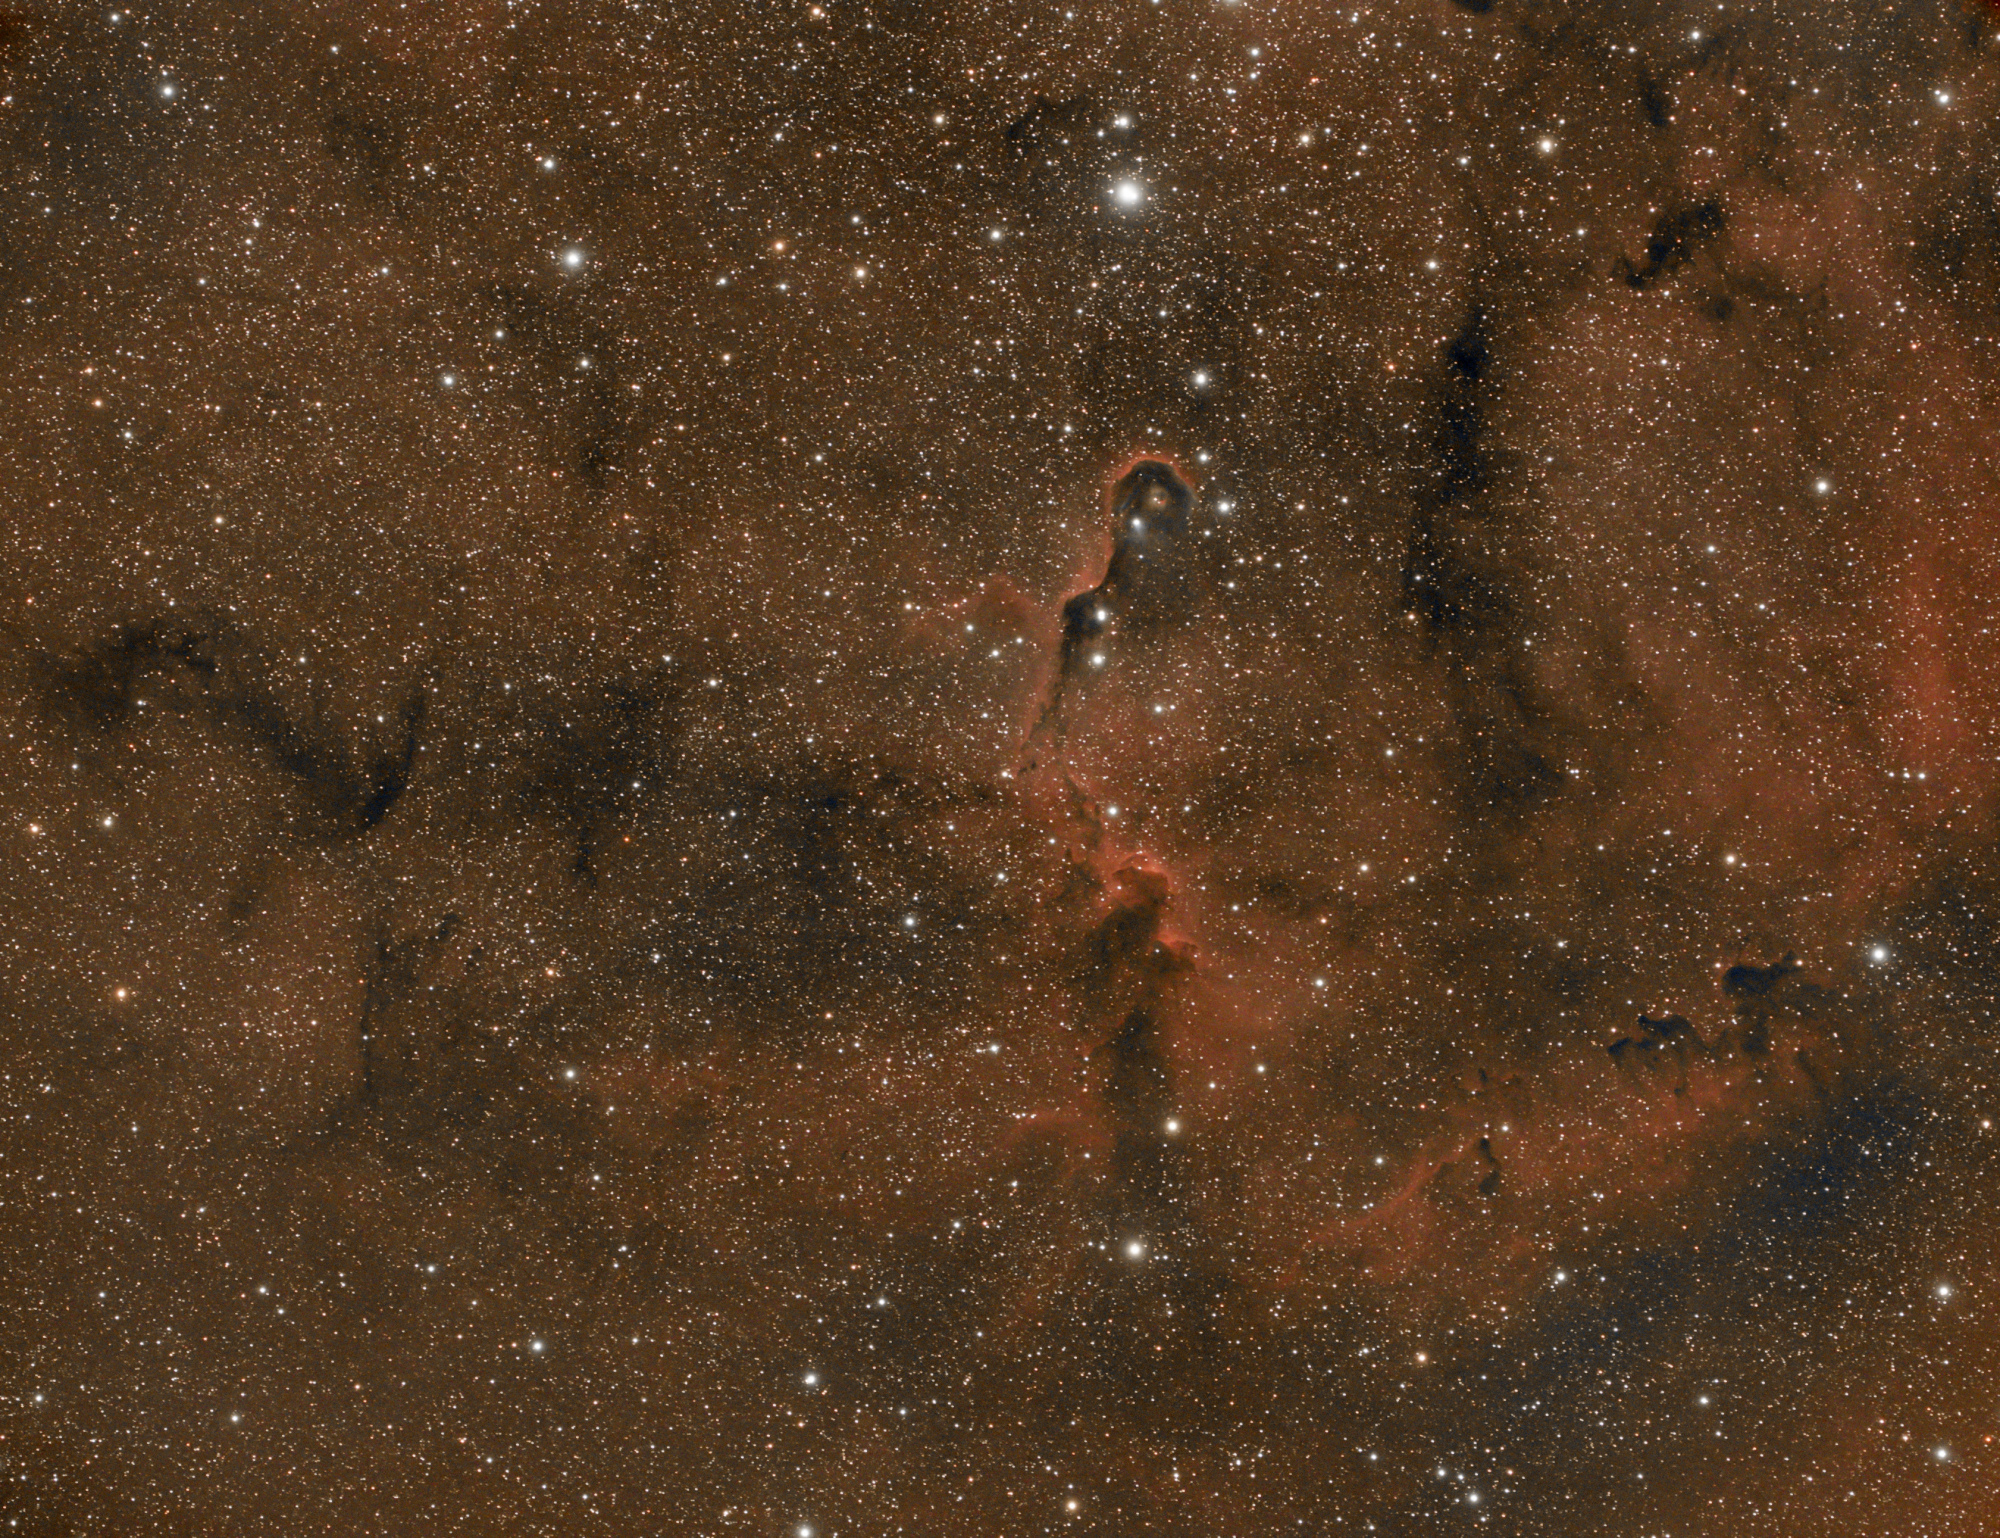 IC1396_correction_balance.thumb.jpg.84334db4624403220fea828de4f1240a.jpg